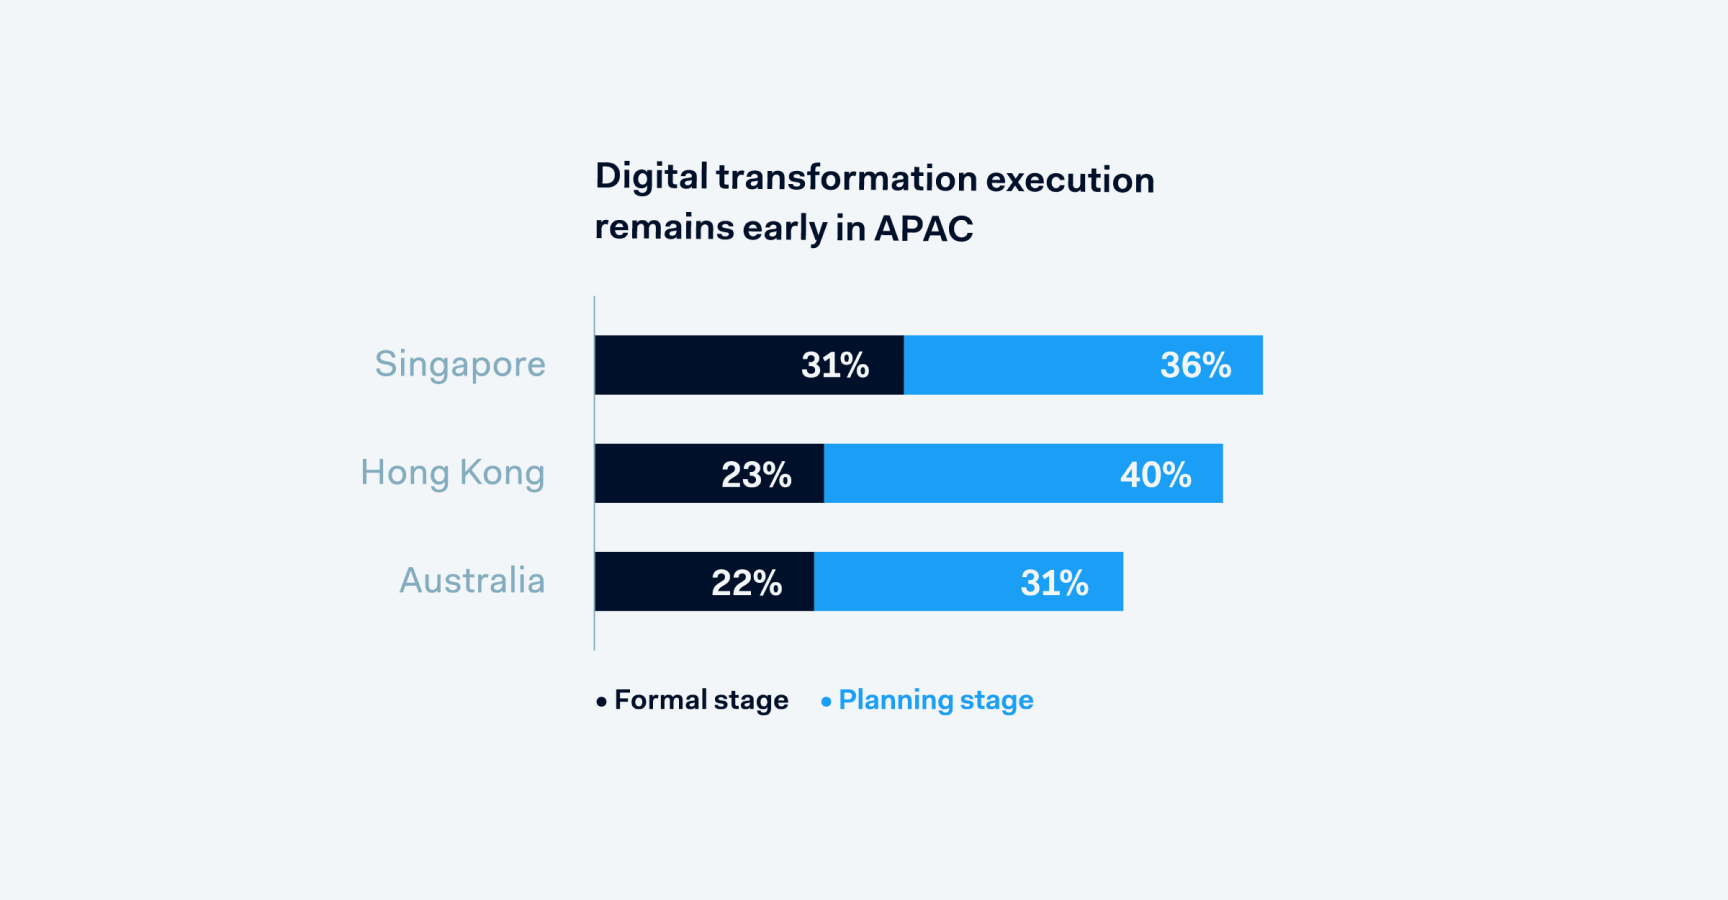 Digital transformation execution remains early in APAC